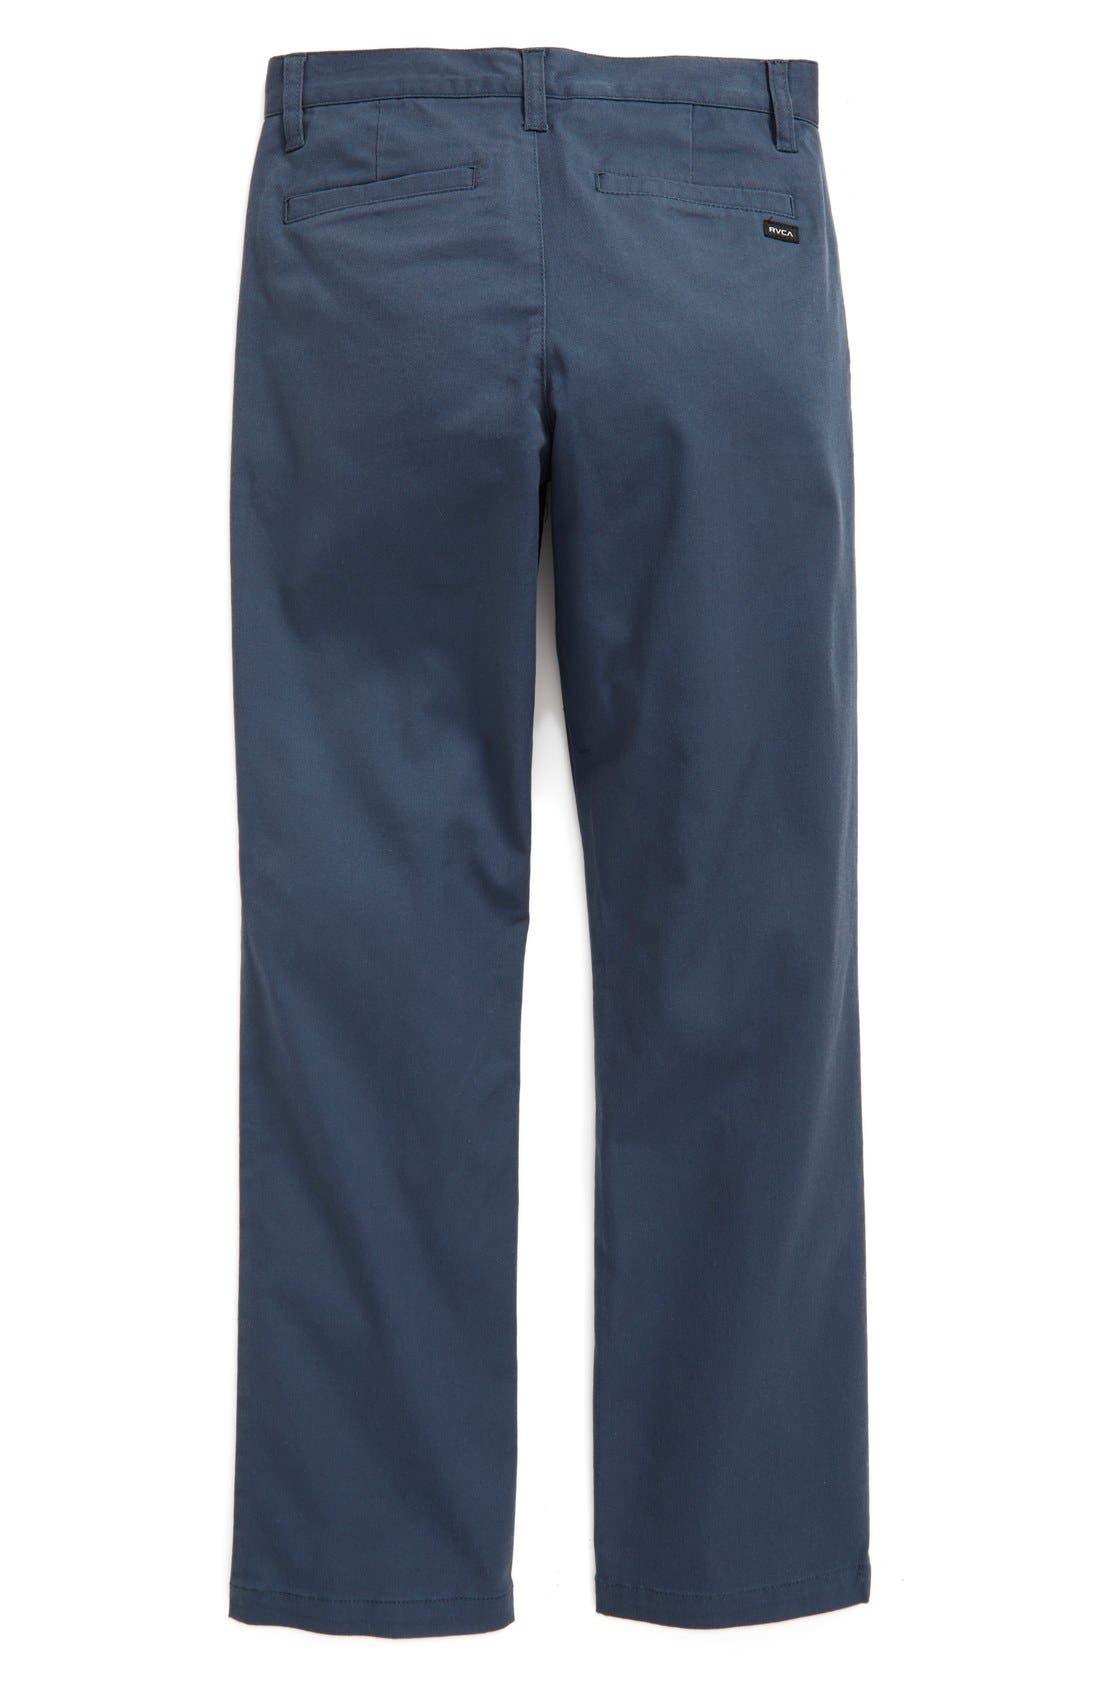 'Weekday' Stretch Chinos,                             Alternate thumbnail 14, color,